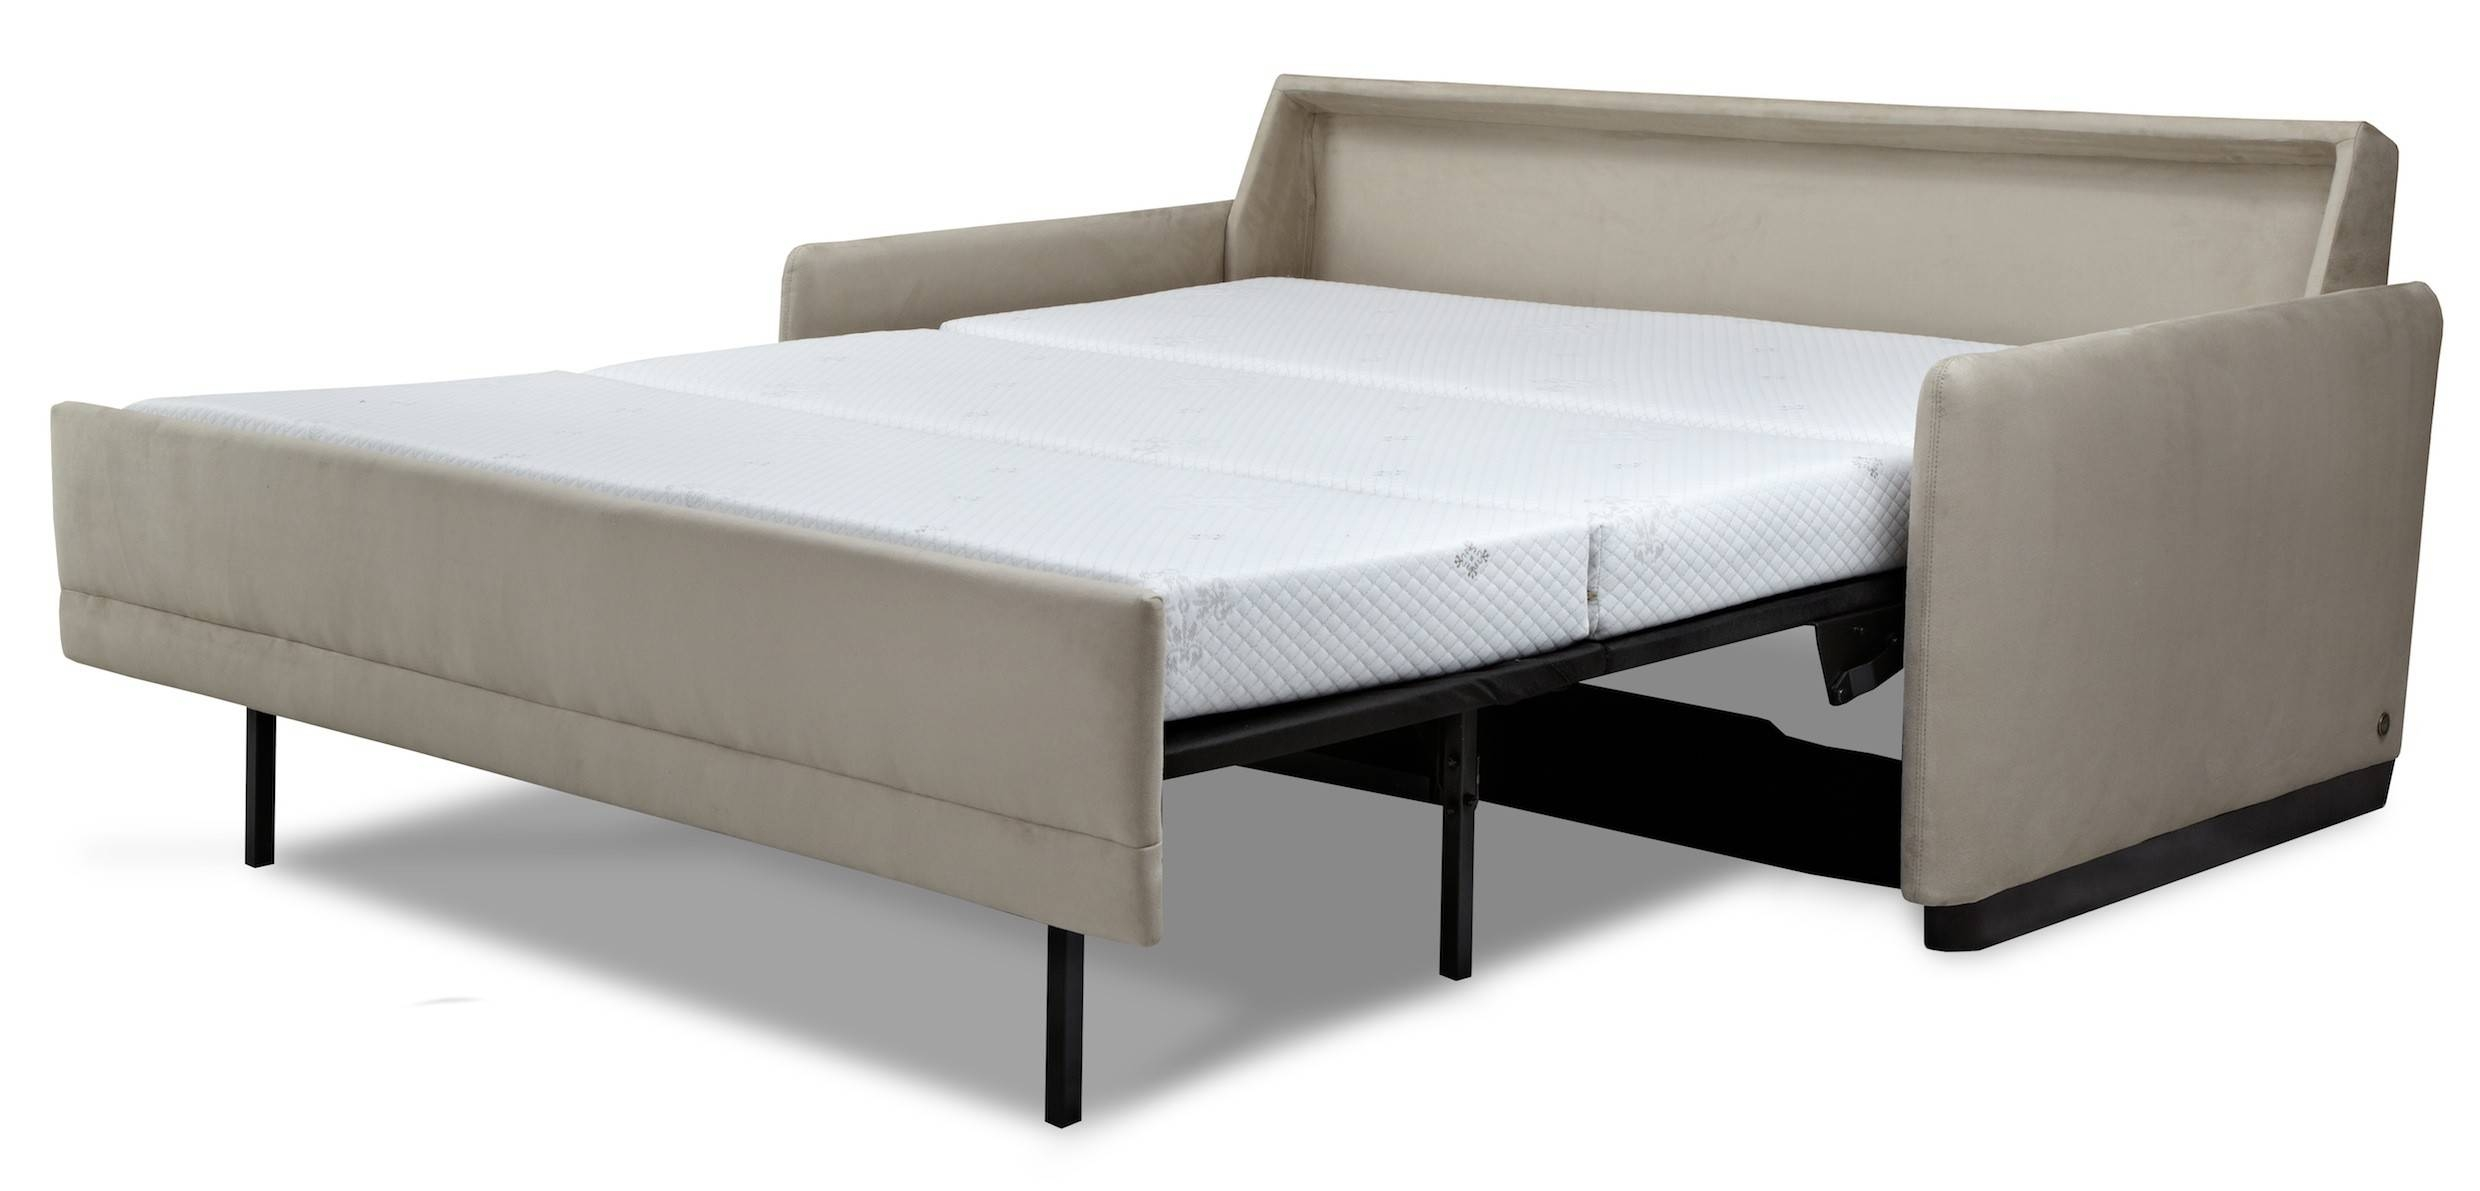 King Size Sleeper Sofa in King Size Sleeper Sofa Sectional (Image 12 of 30)